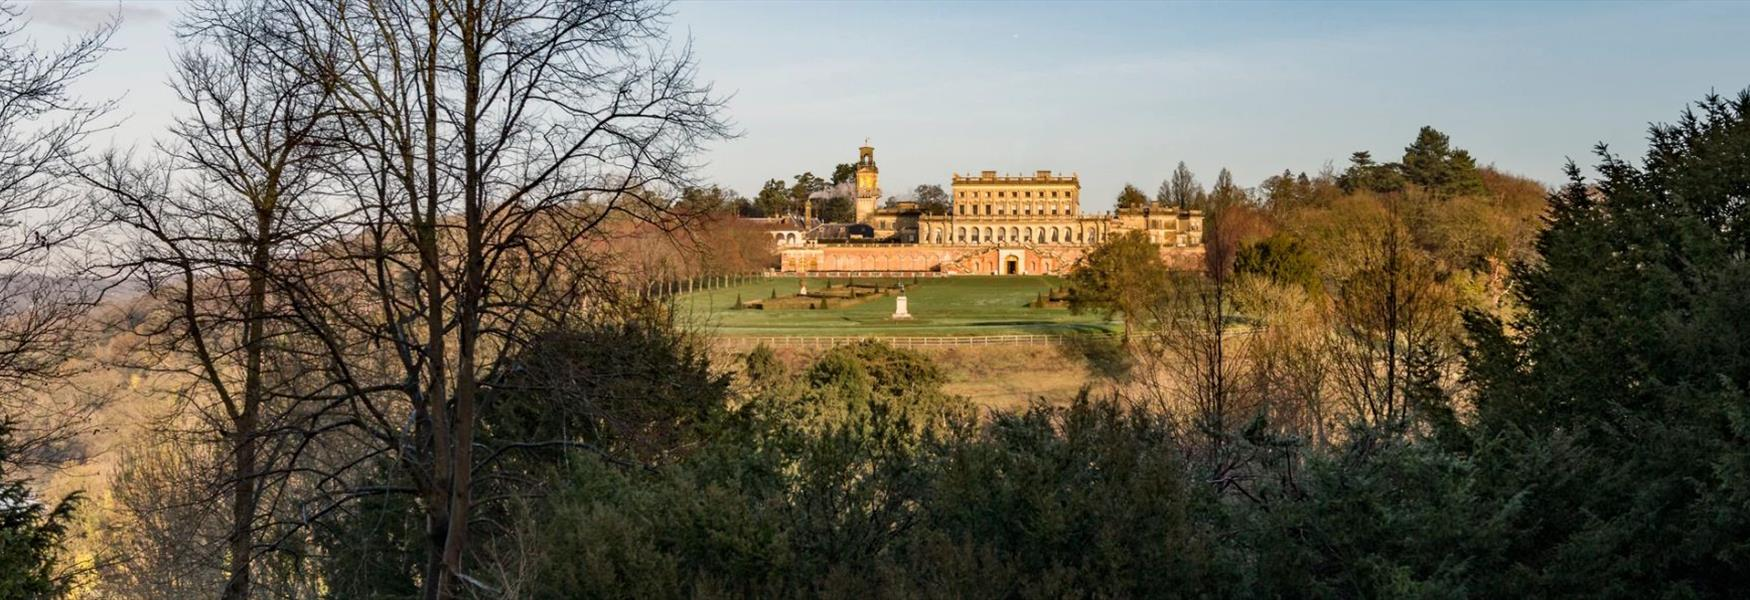 A view of Cliveden House from the woodlands